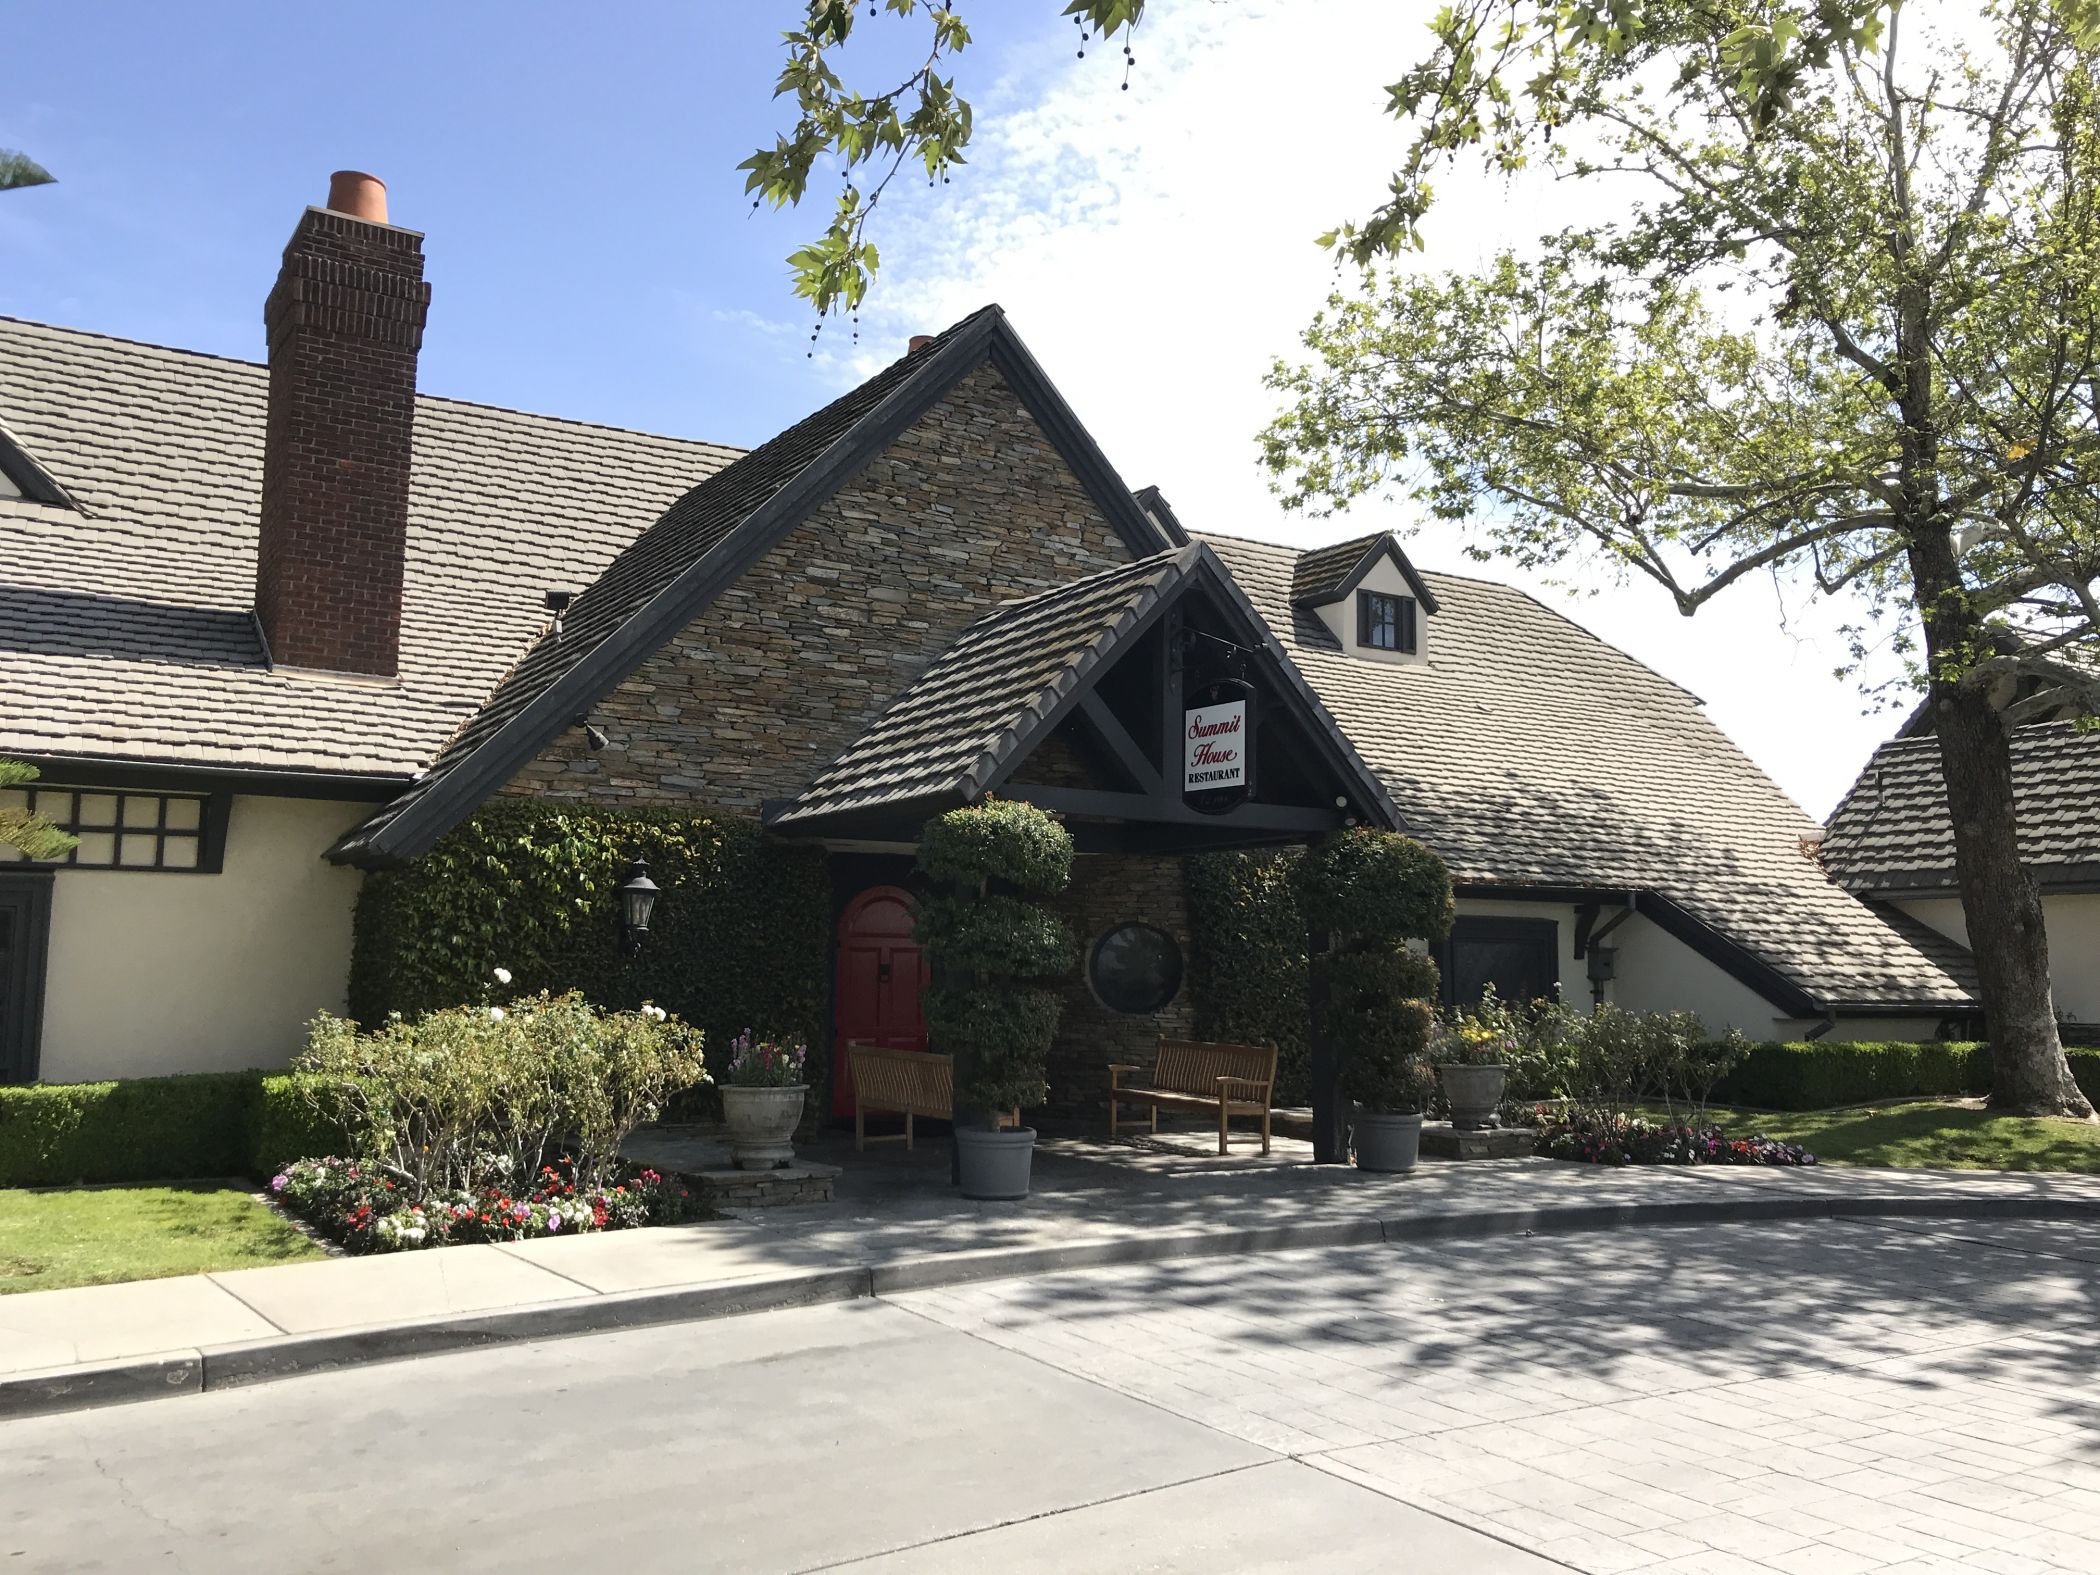 Summit House Restaurant in Fullerton